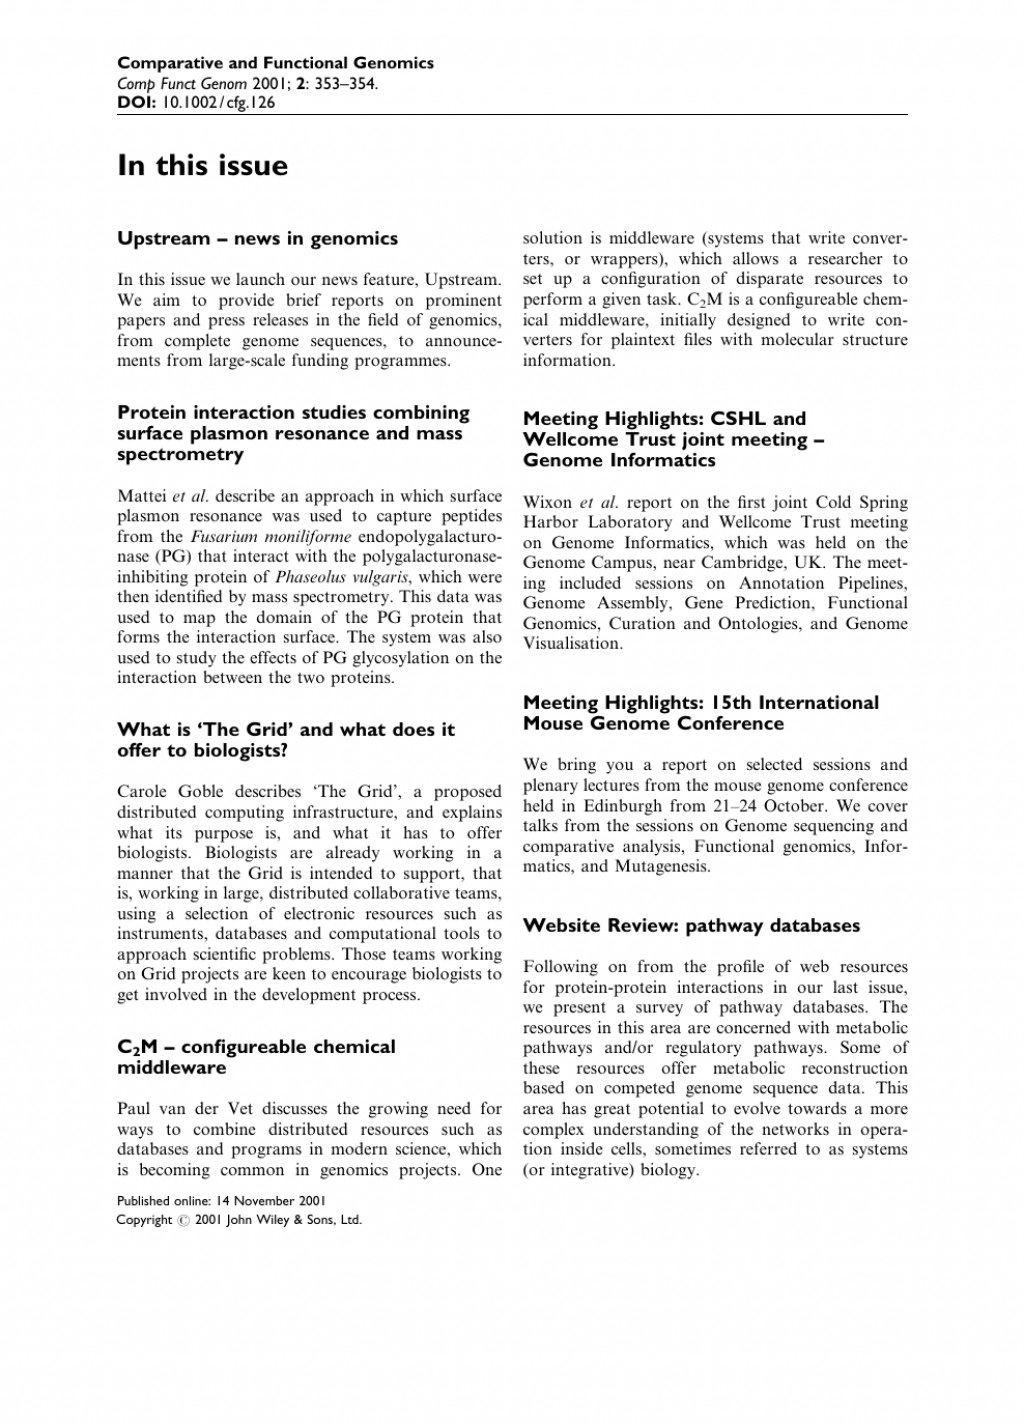 005 Interesting Research Paper Topics Biology Fearsome Marine Large